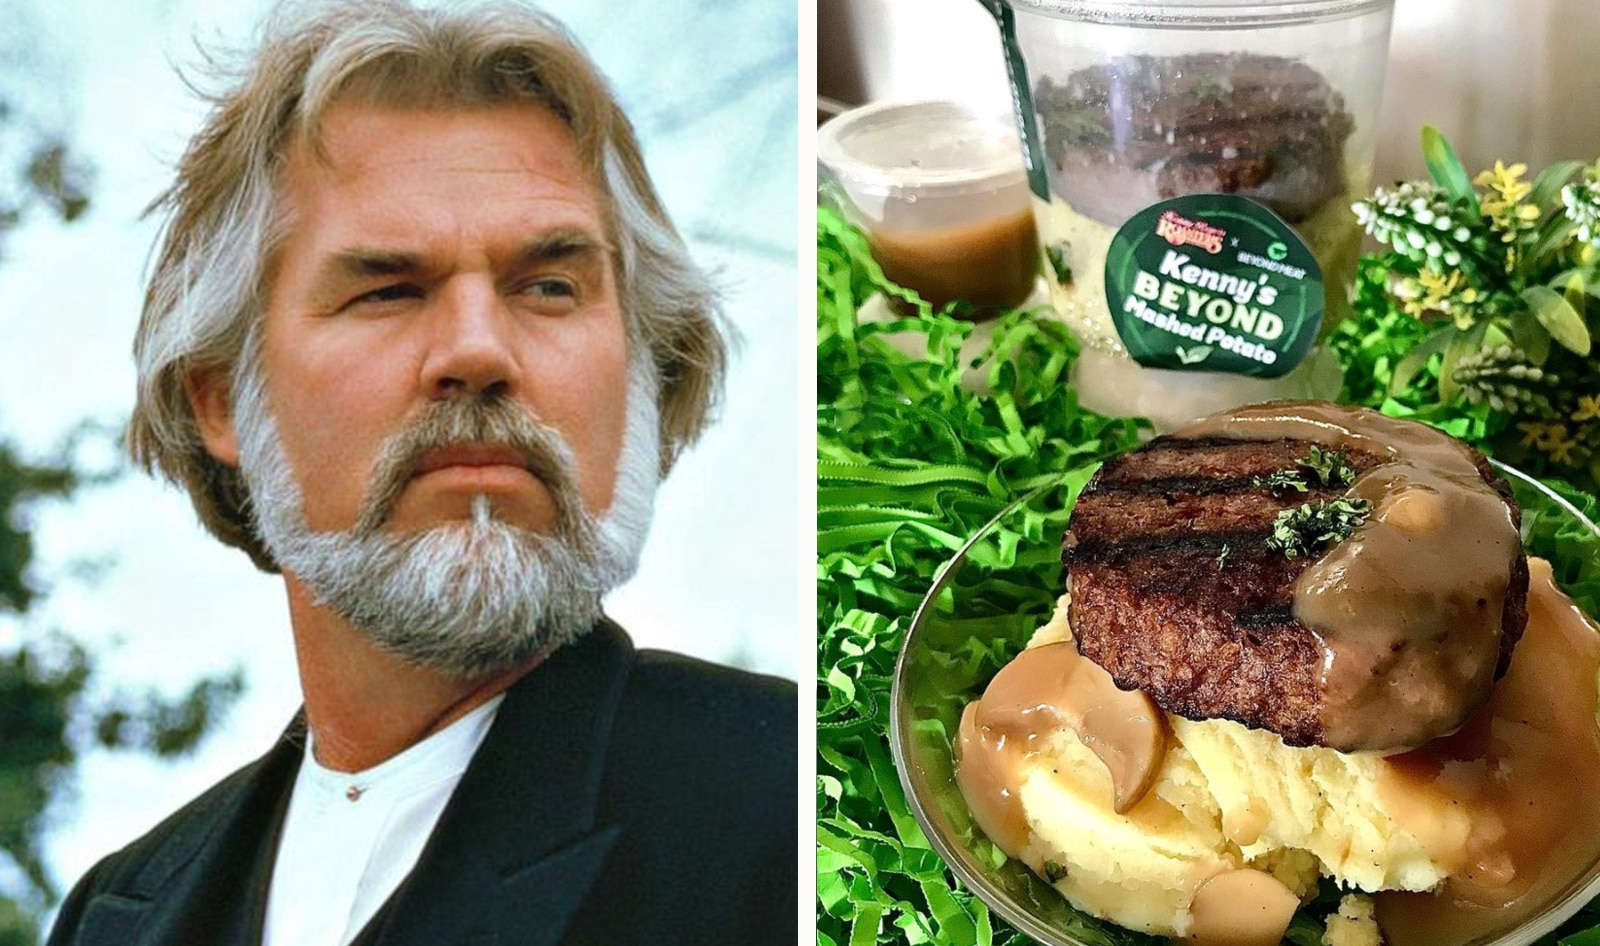 Kenny Rogers' Chicken Chain Now Serves Mashed Potatoes Topped with Vegan Beyond Burgers